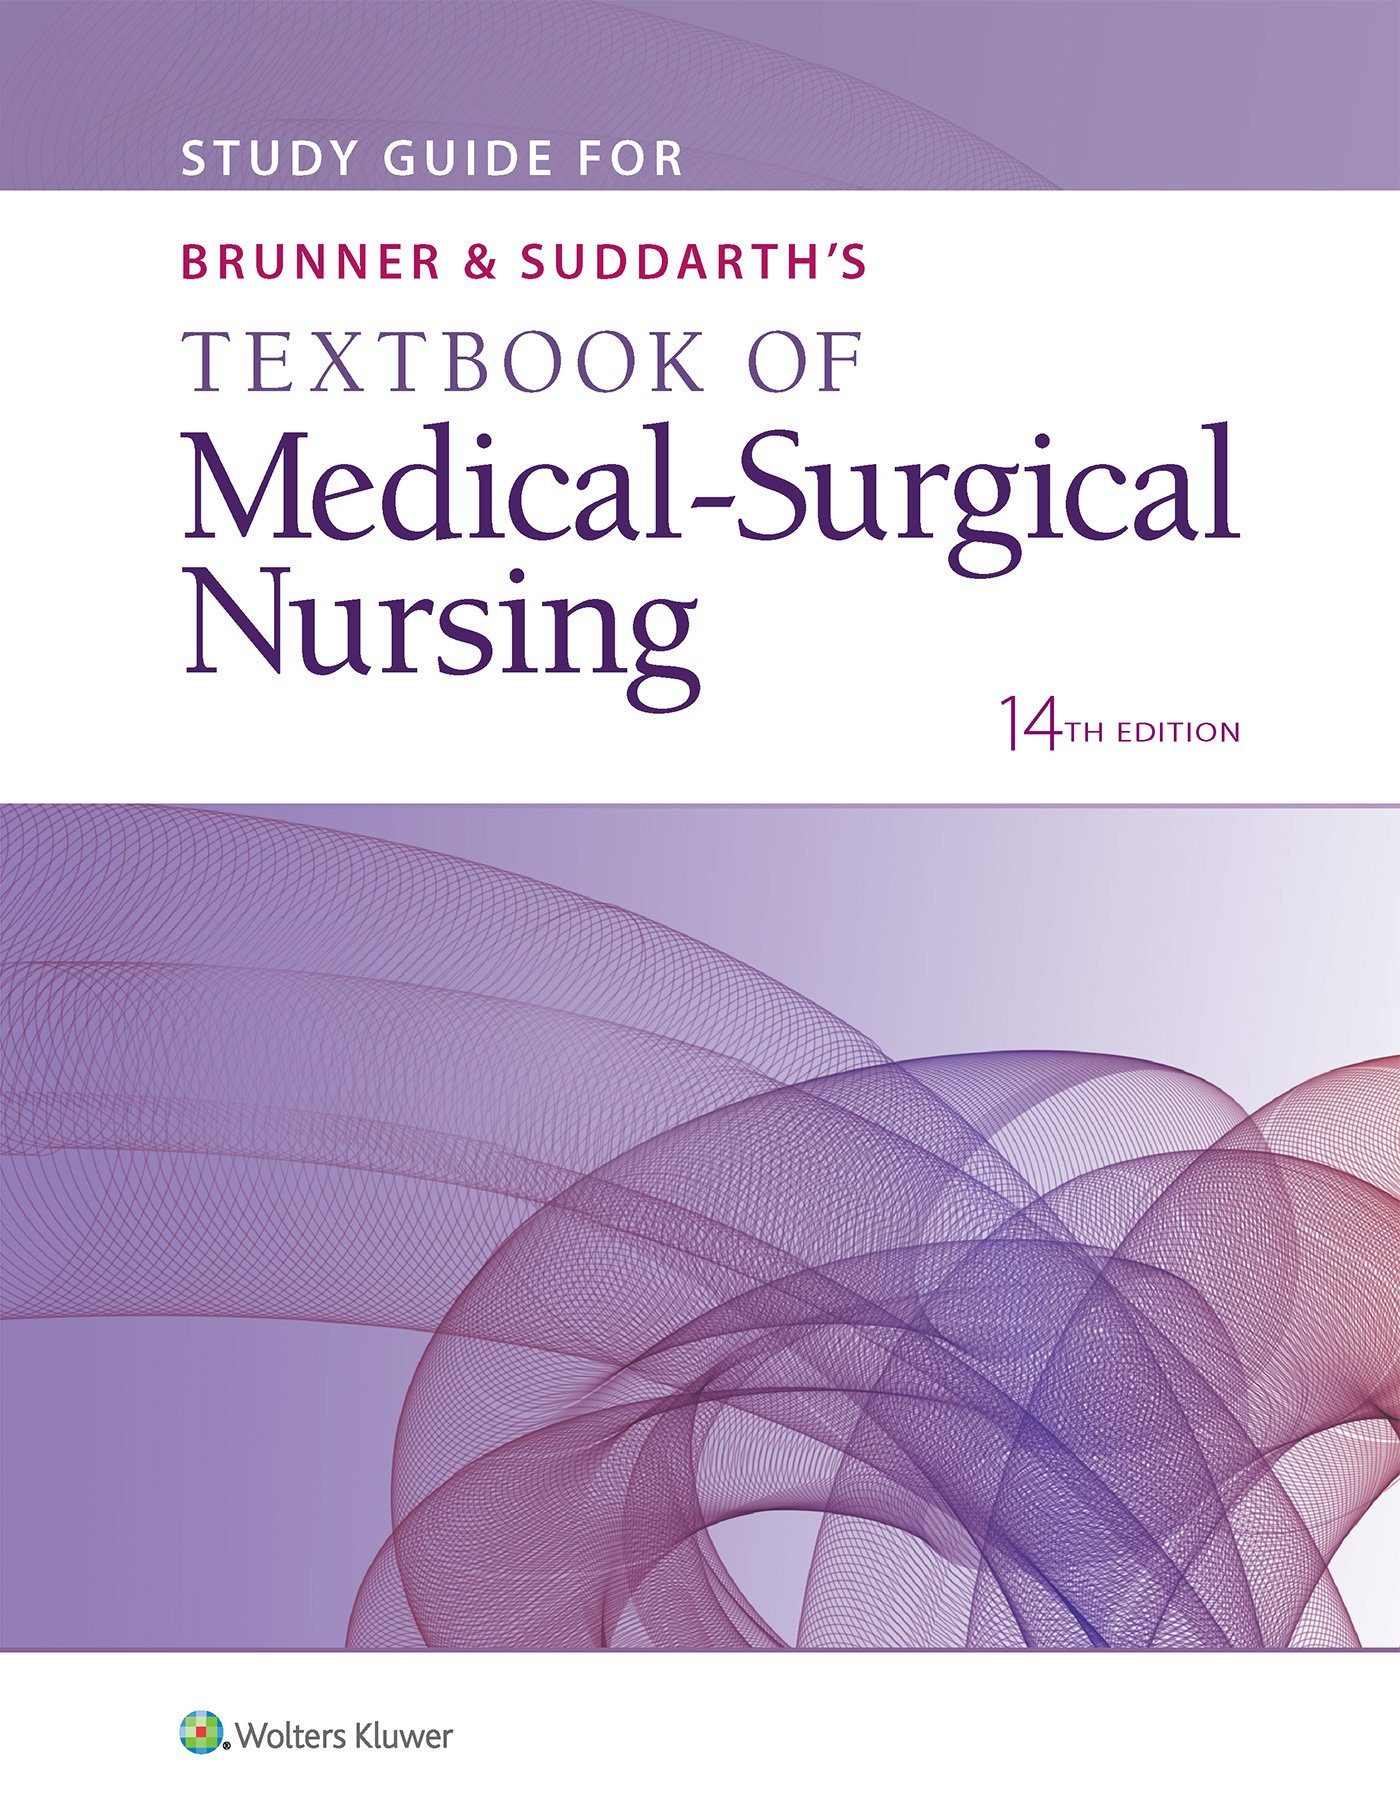 Study Guide for Brunner & Suddarth's Textbook of Medical-Surgical Nursing by LWW